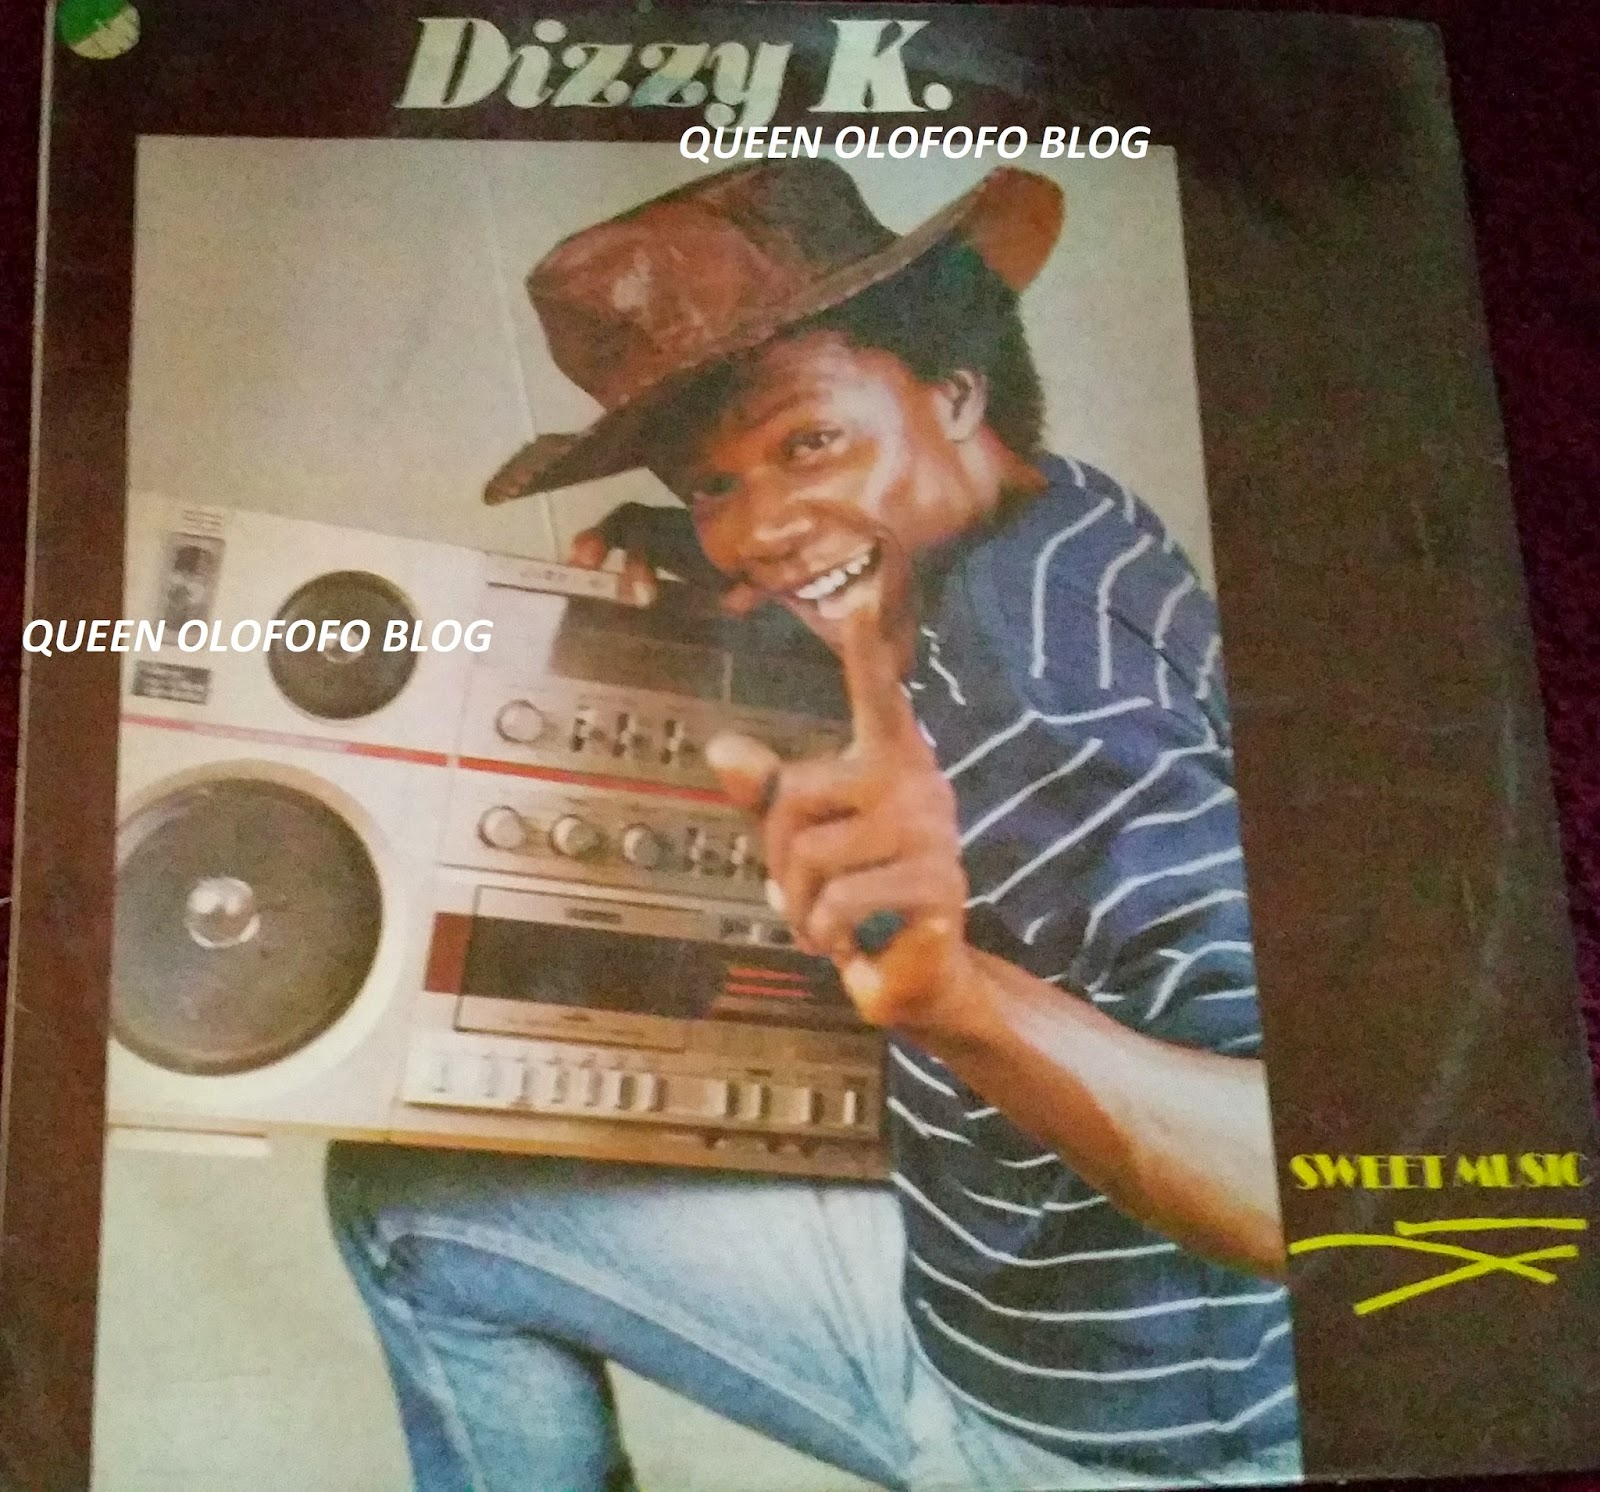 dizzy K falola was a pop king from 1980s